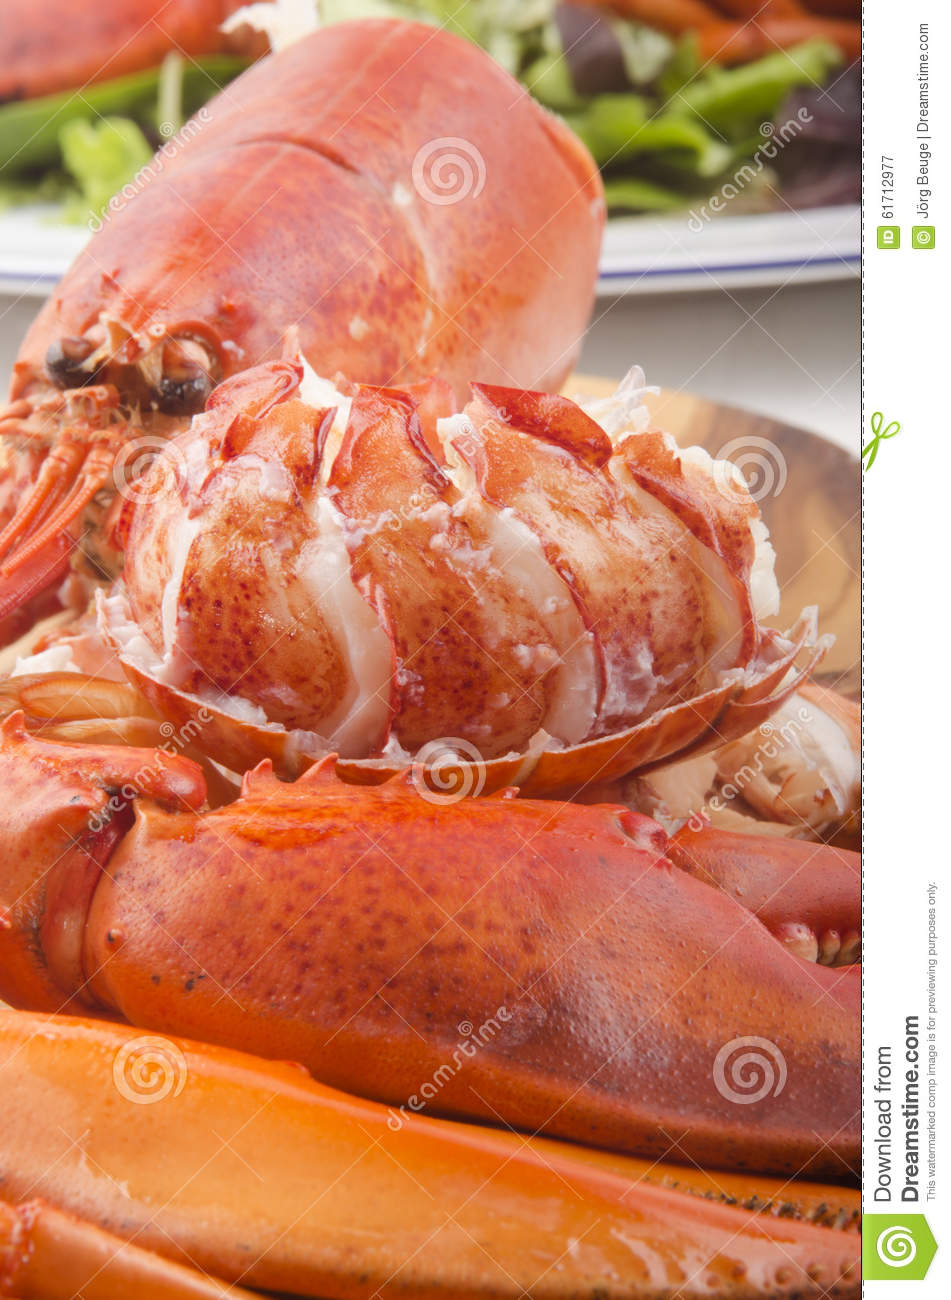 how to cook lobster meat no shell